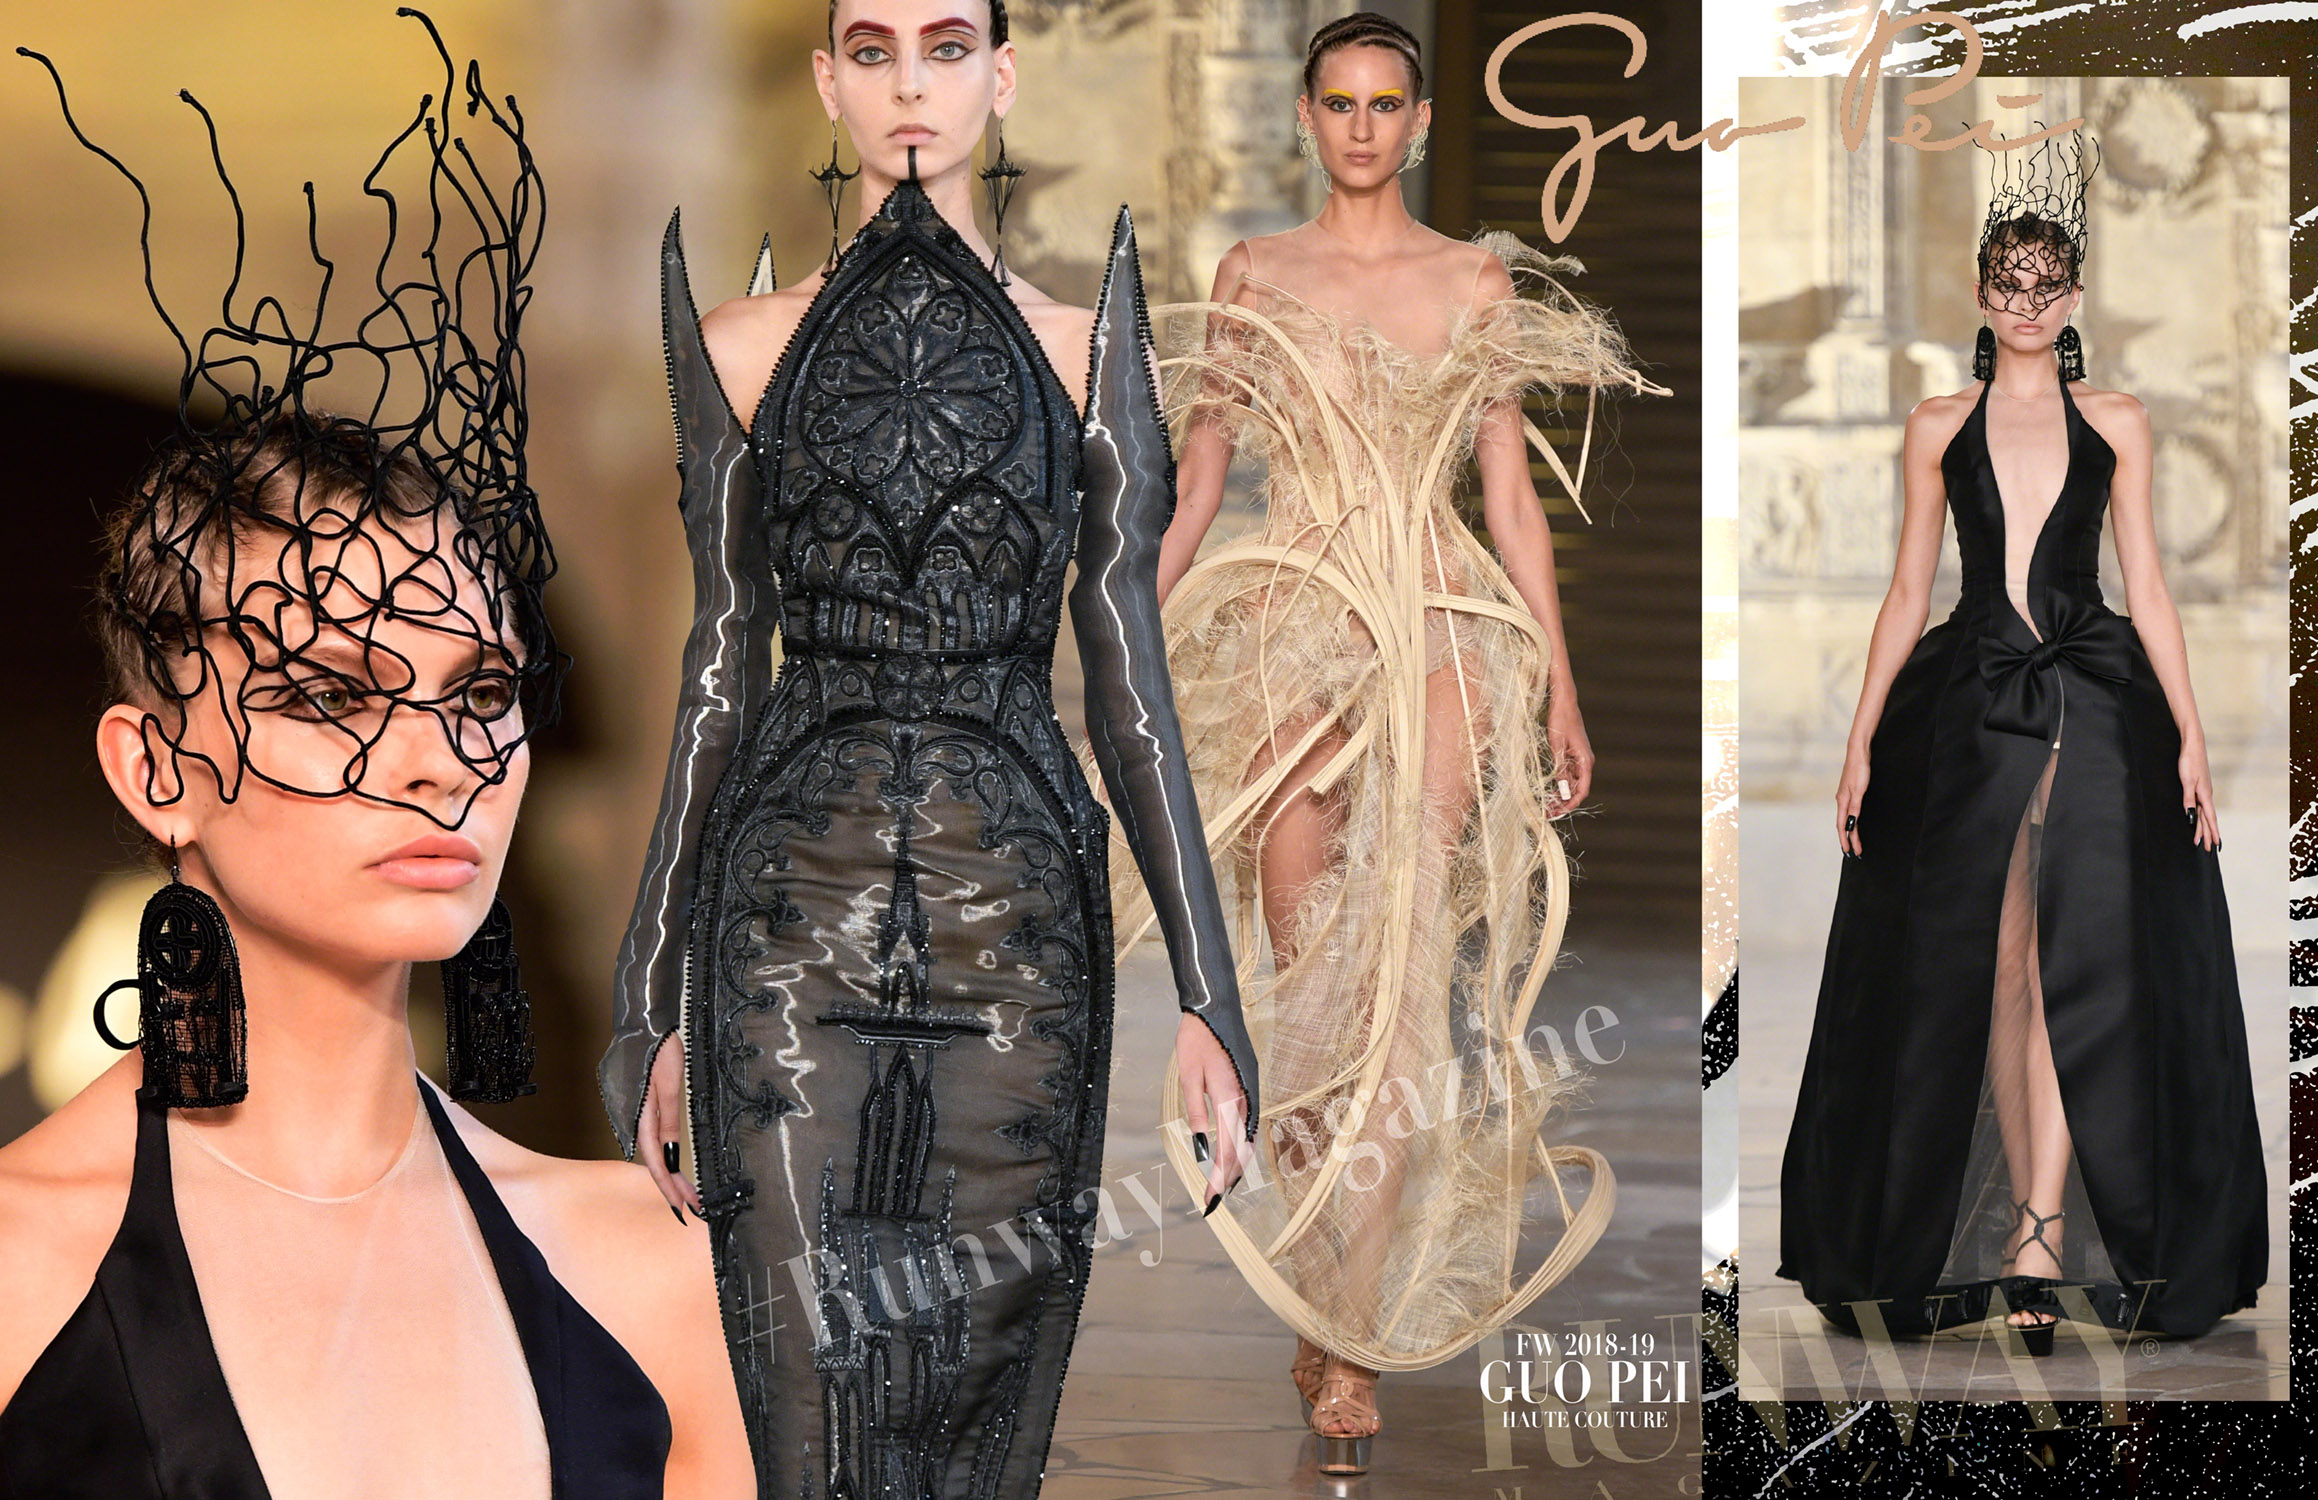 GUO PEI Haute Couture Fall Winter 2018-2019 Runway Magazine